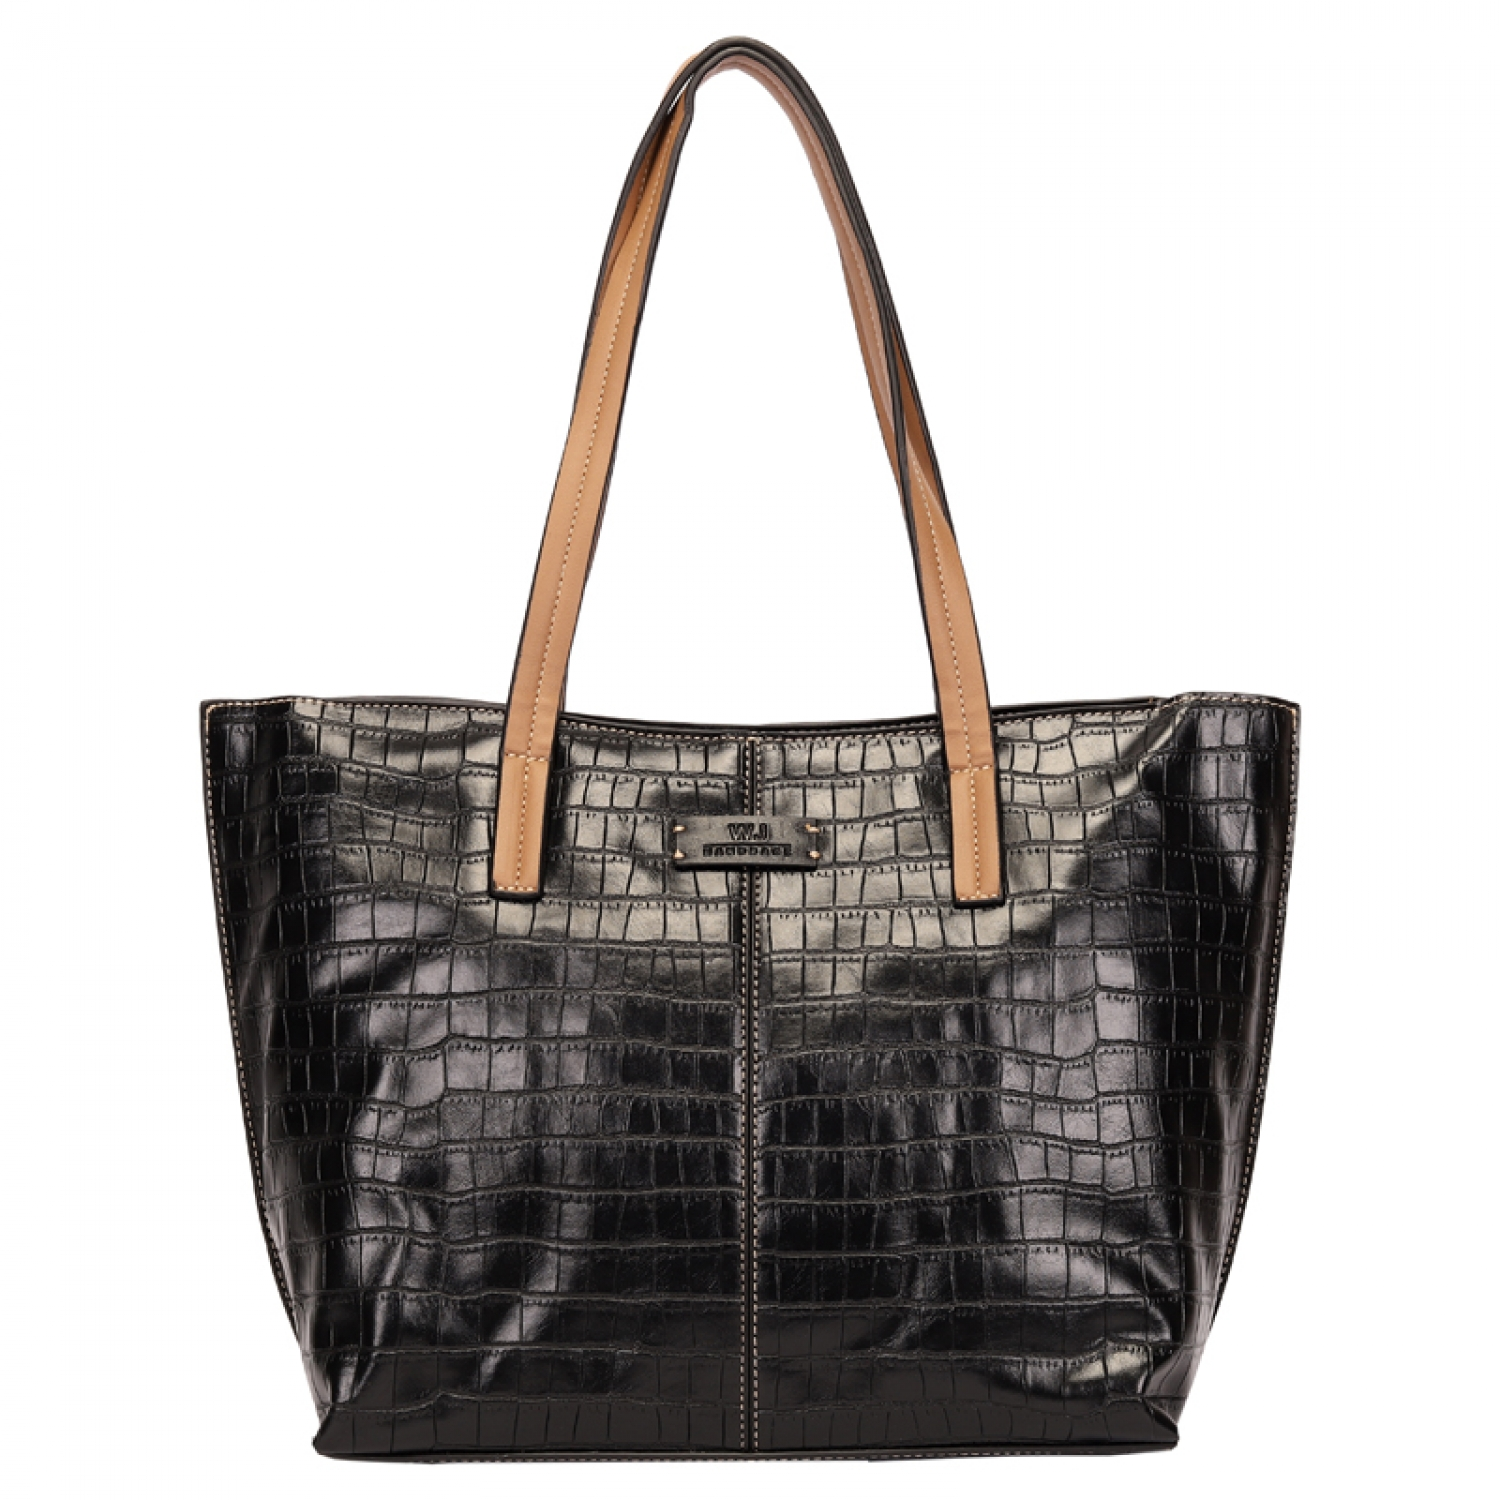 BOLSA SHOPPING BAG CROCO COM RECORTE PRETO